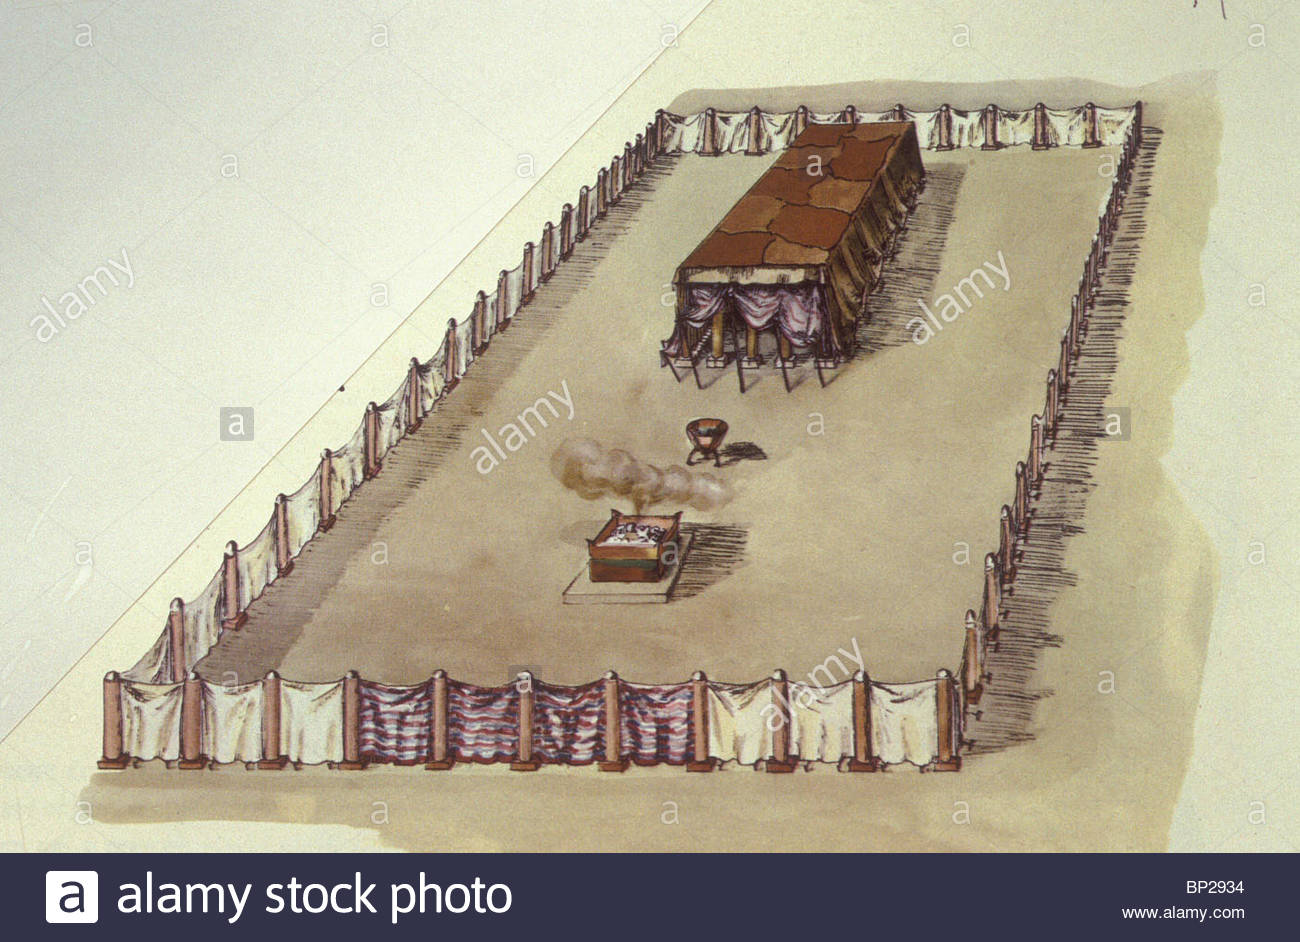 1300x942 Drawing The Reconstruction The Tabernacle The Tent